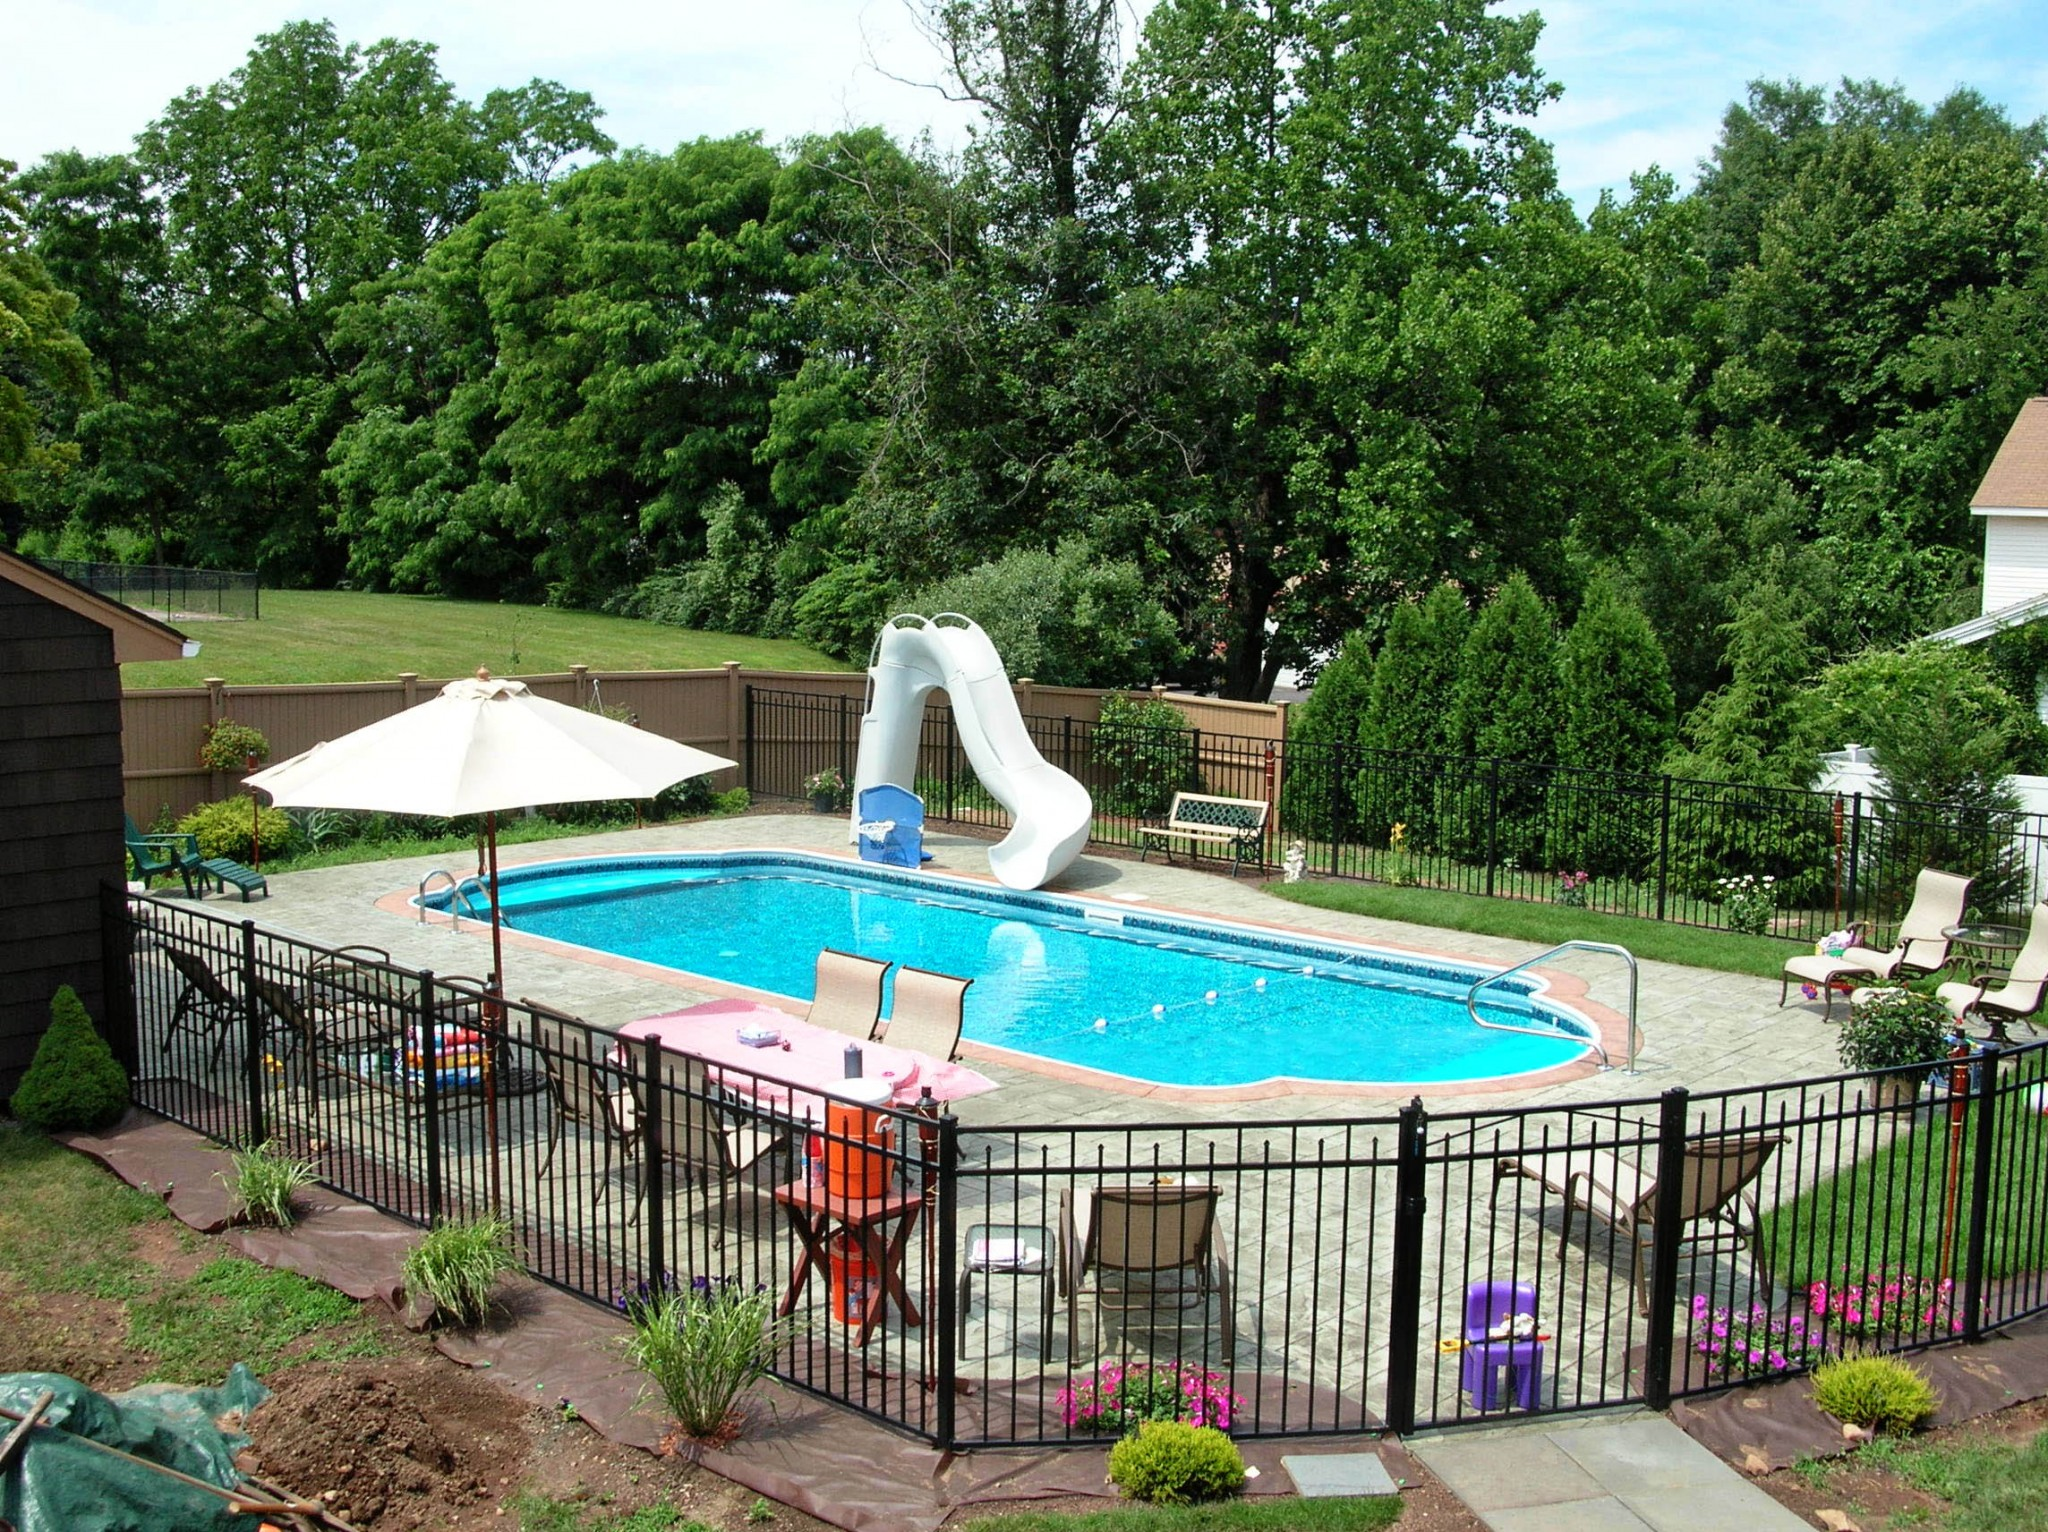 inground pool fence ideas saveemail guardian pool fence systems swimming pools simple inground pool designs - Inground Pool Patio Designs